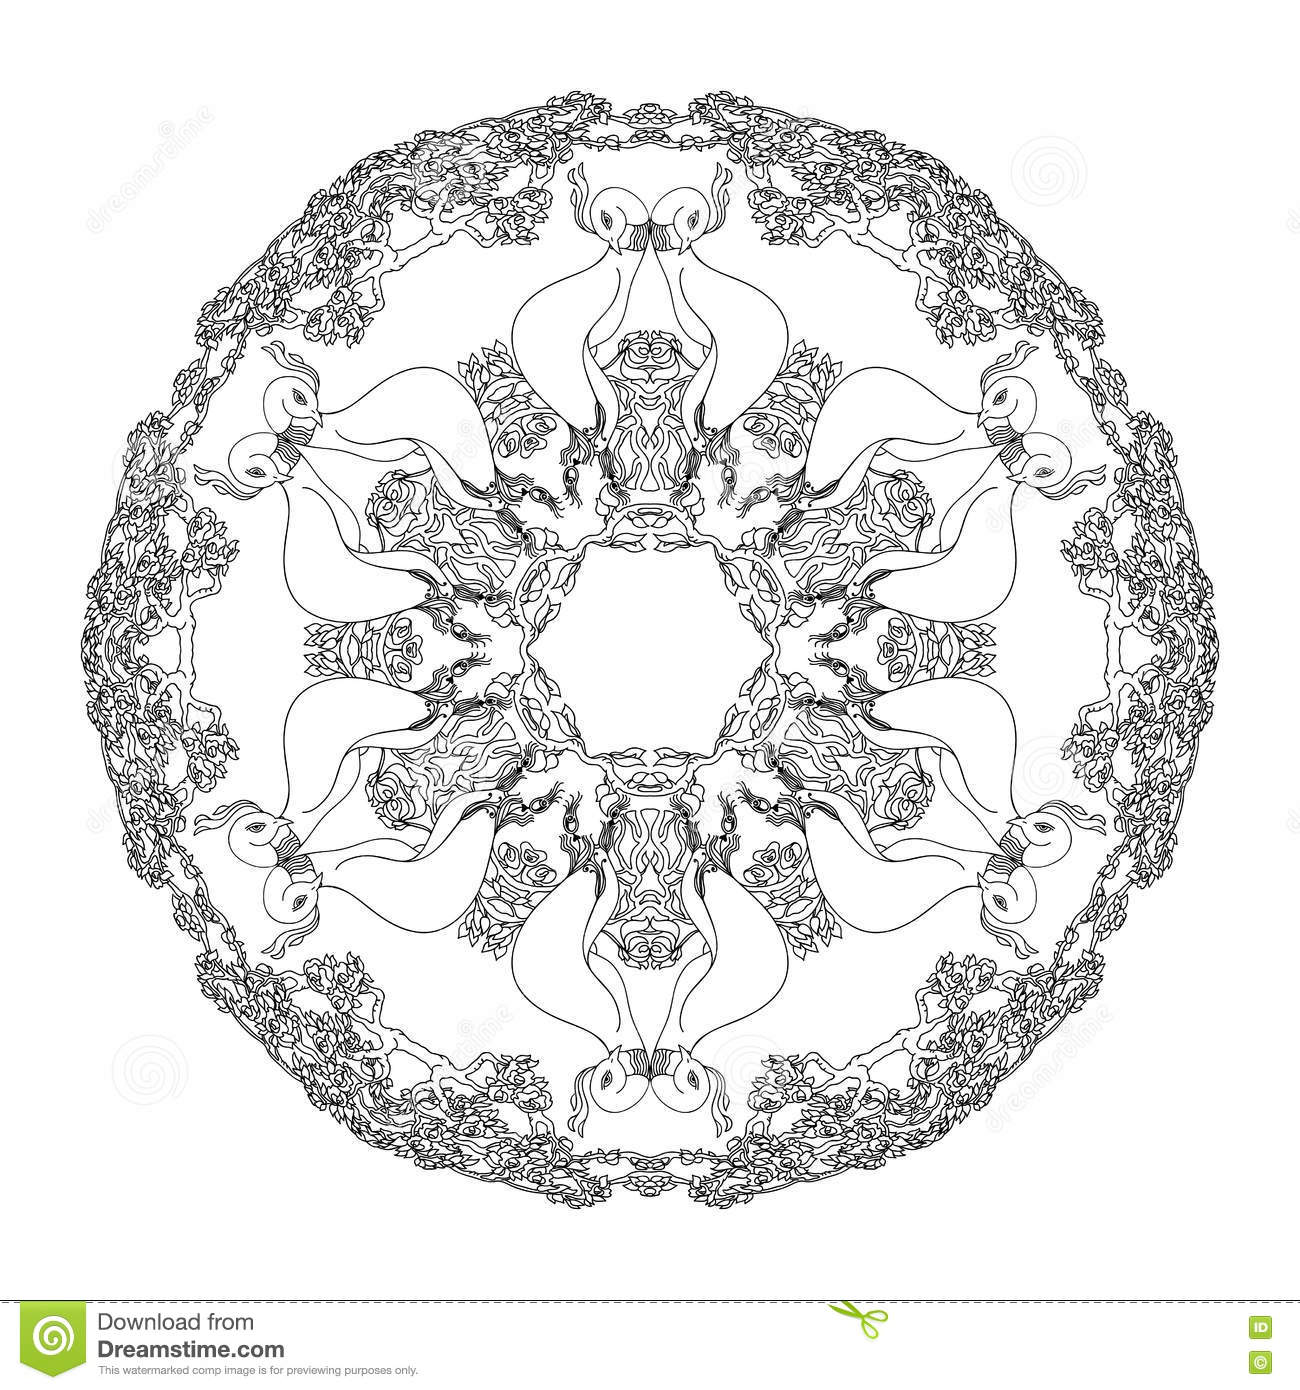 Mandala Shaped Contoured Birds Flowers Leaves And Floral Decorative Elements Stock Vector